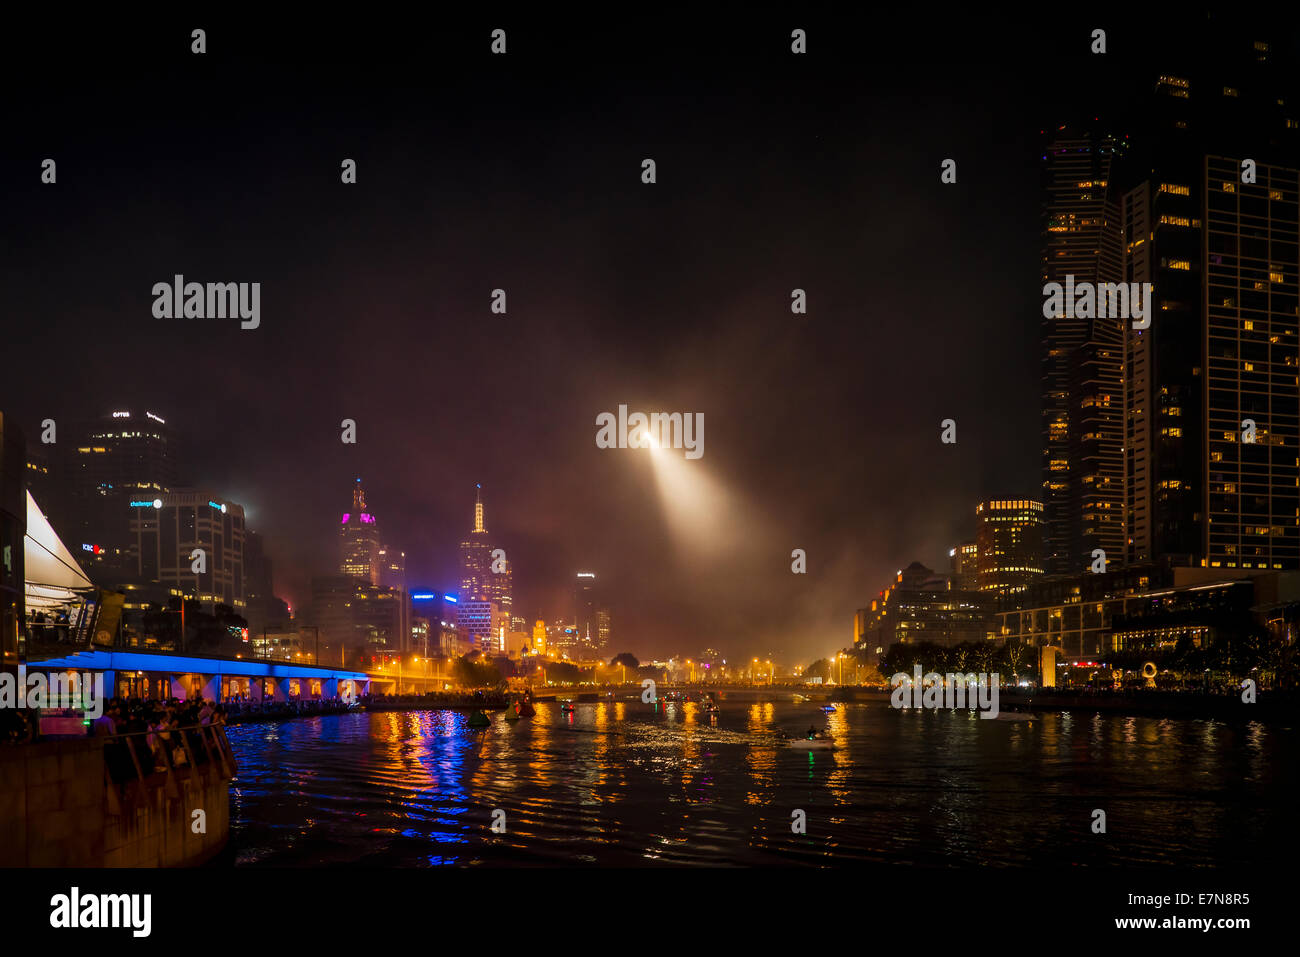 A helicopter search light at night view over the Yarra River in downtown Melbourne, Australia. - Stock Image